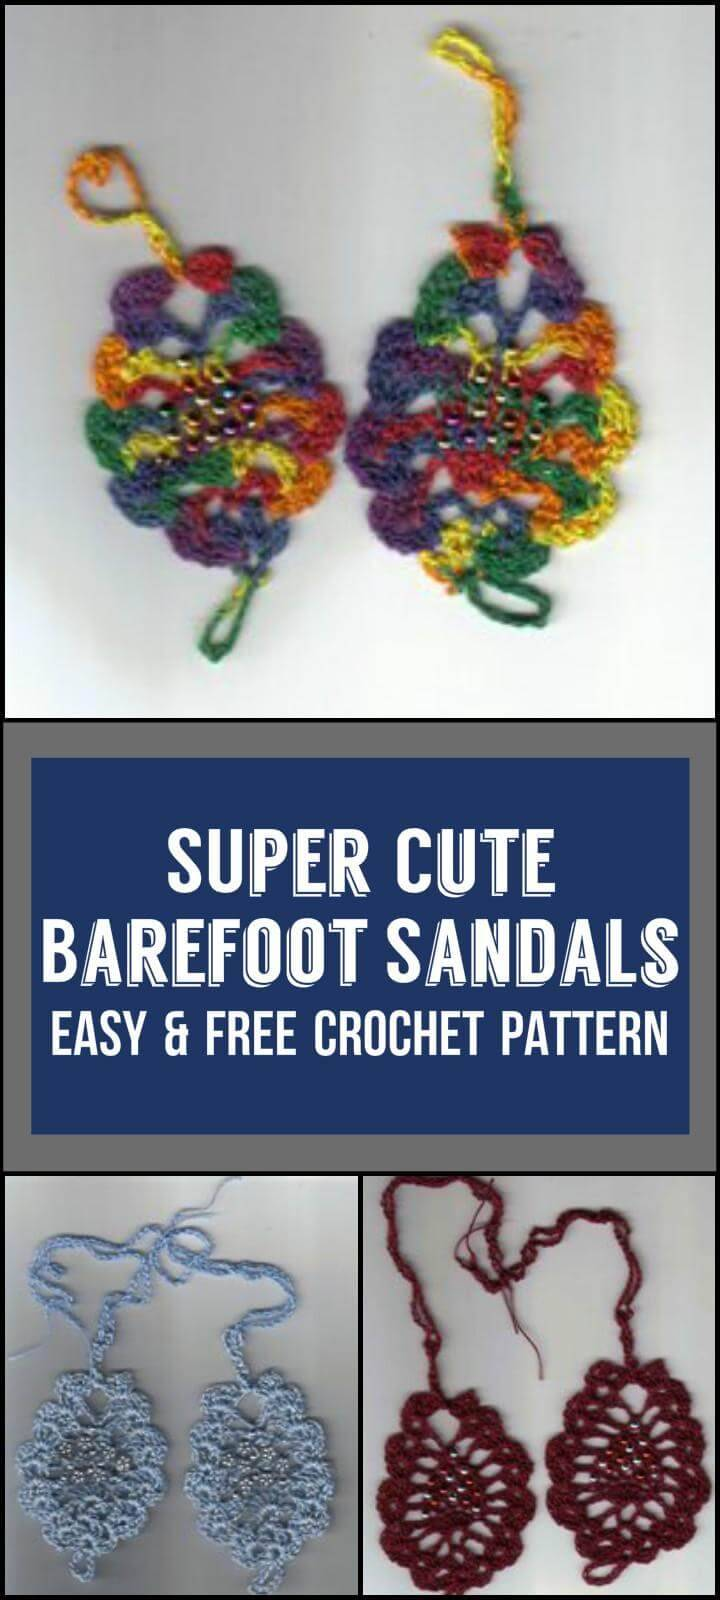 Super Cute  Barefoot Sandals Easy  Free Crochet Pattern